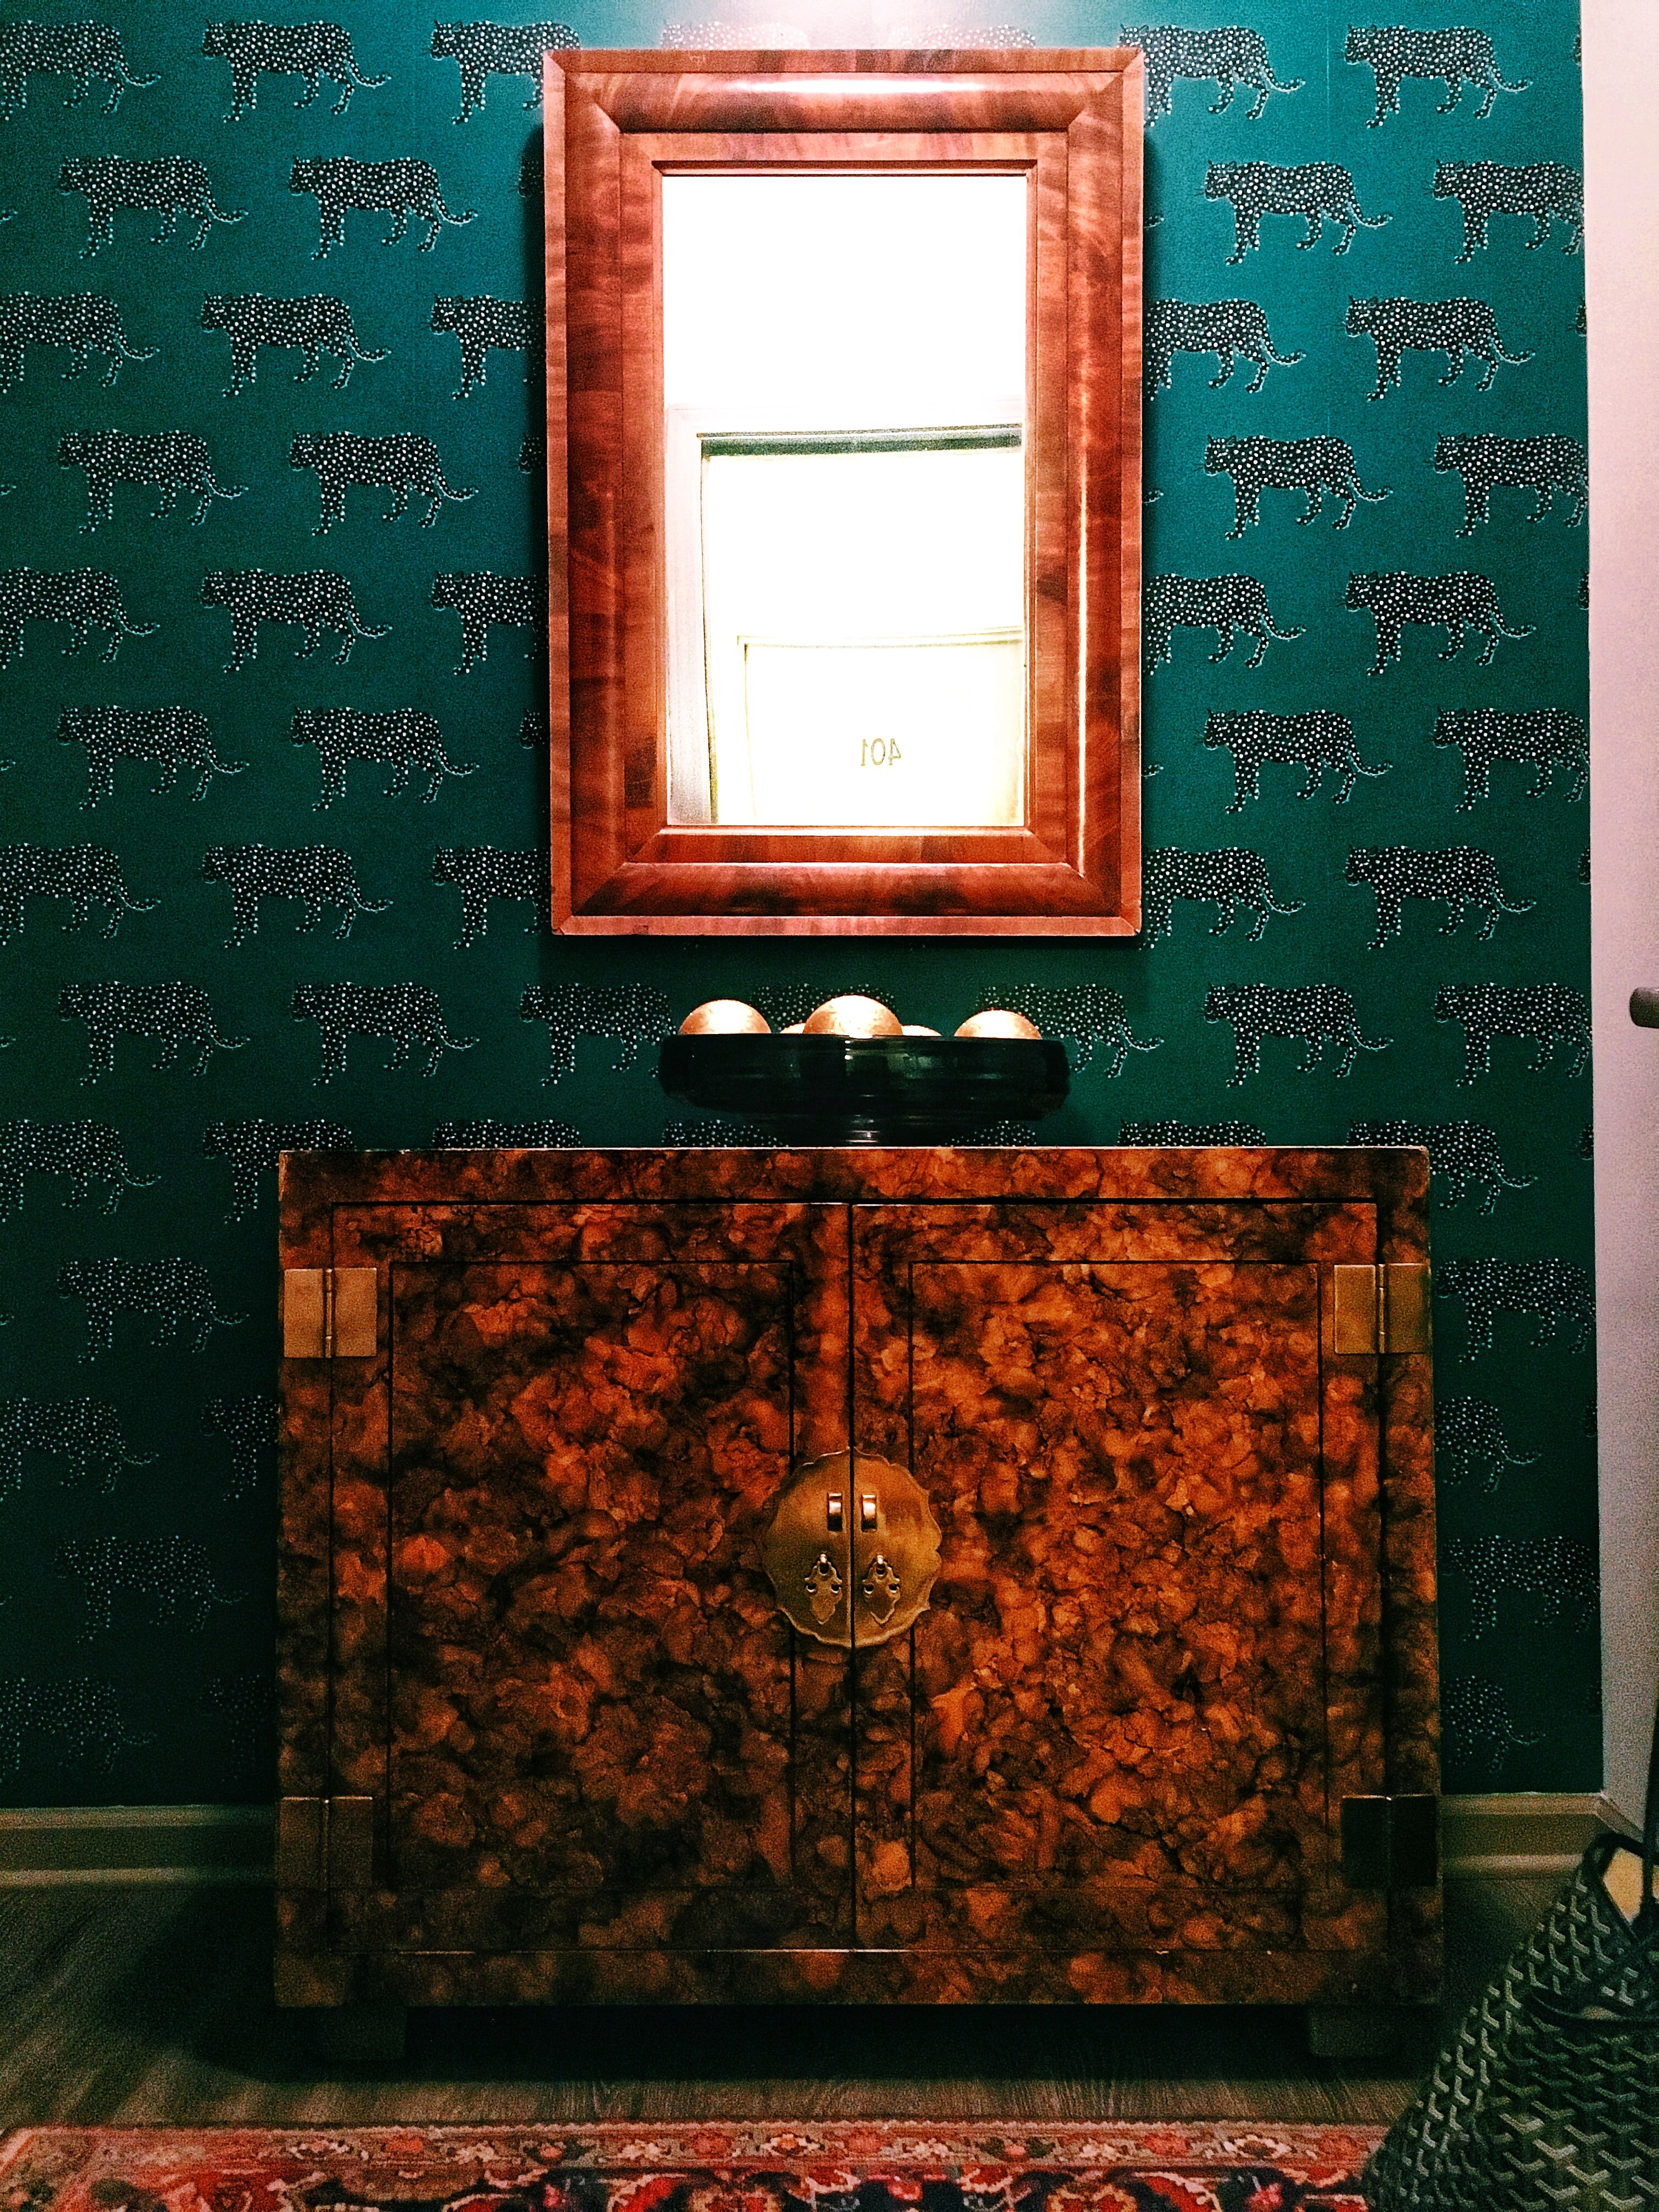 Target Opalhouse wallpaper with flame mahogany mirror and